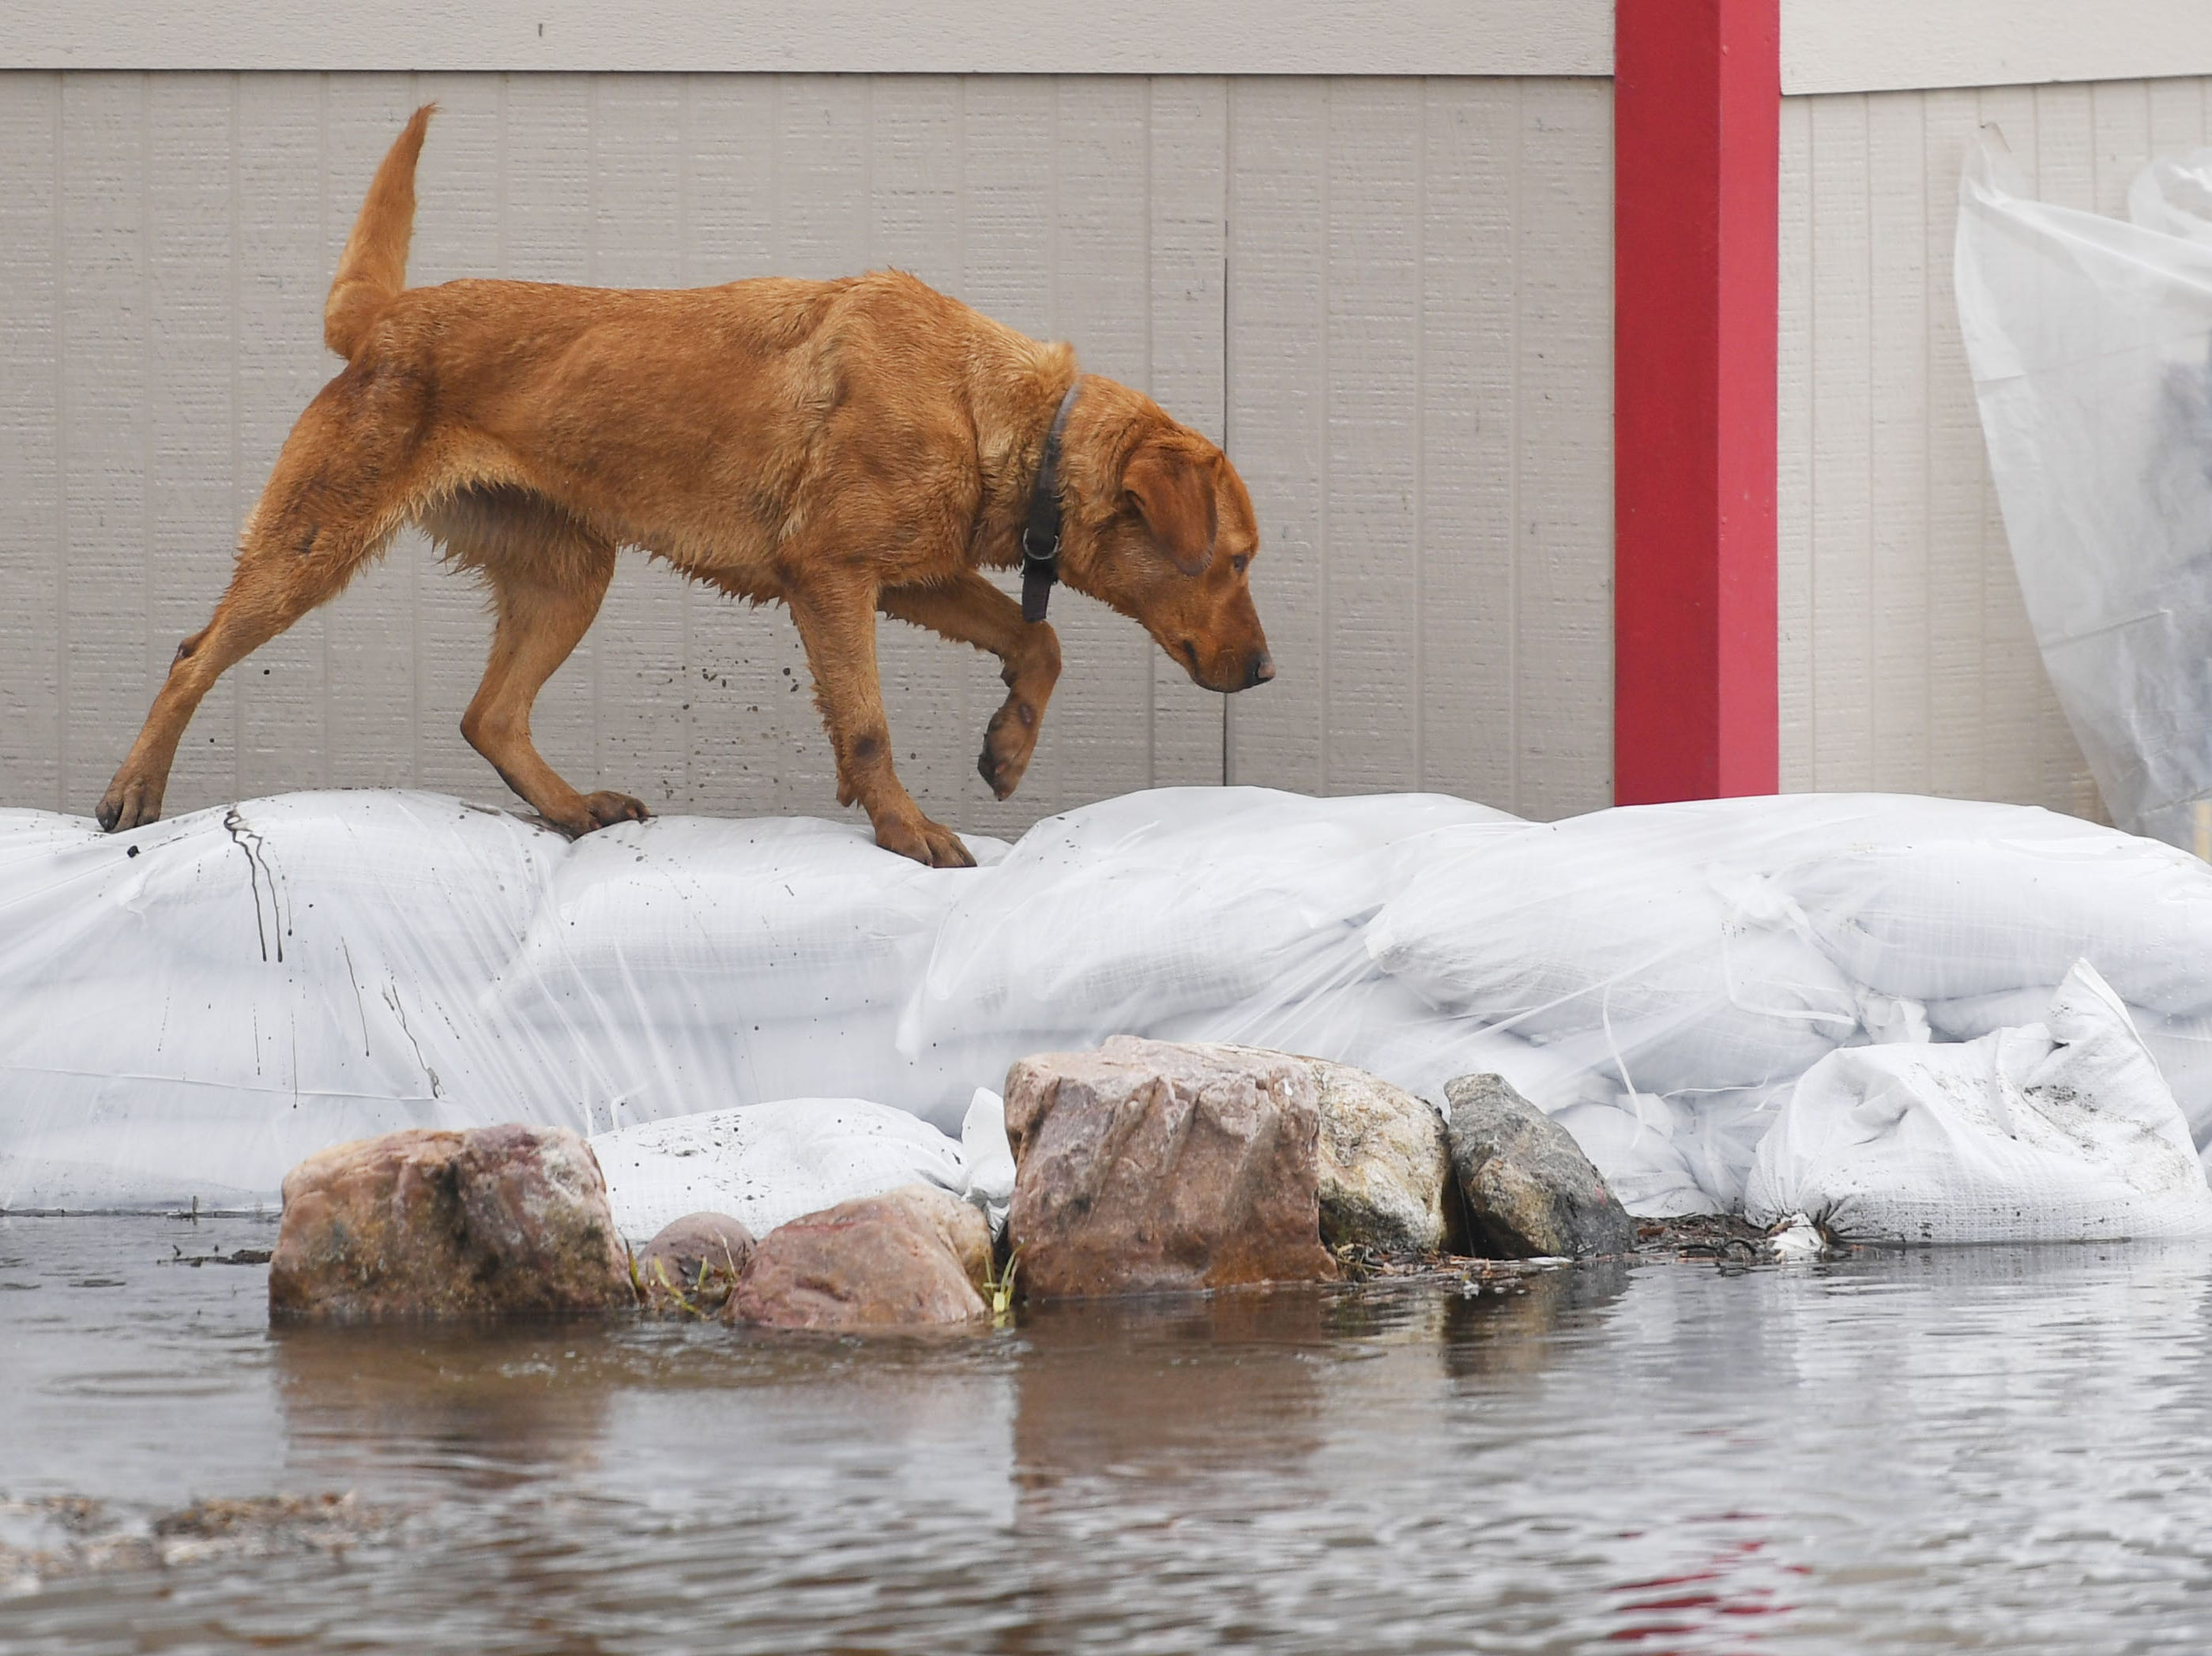 A dog uses sandbags to walk across the flood waters in Renner Tuesday, March 26, in Renner, S.D. The latest river forecasts have the Big Sioux at Dell Rapids staying at 'major' flood level until early next week.